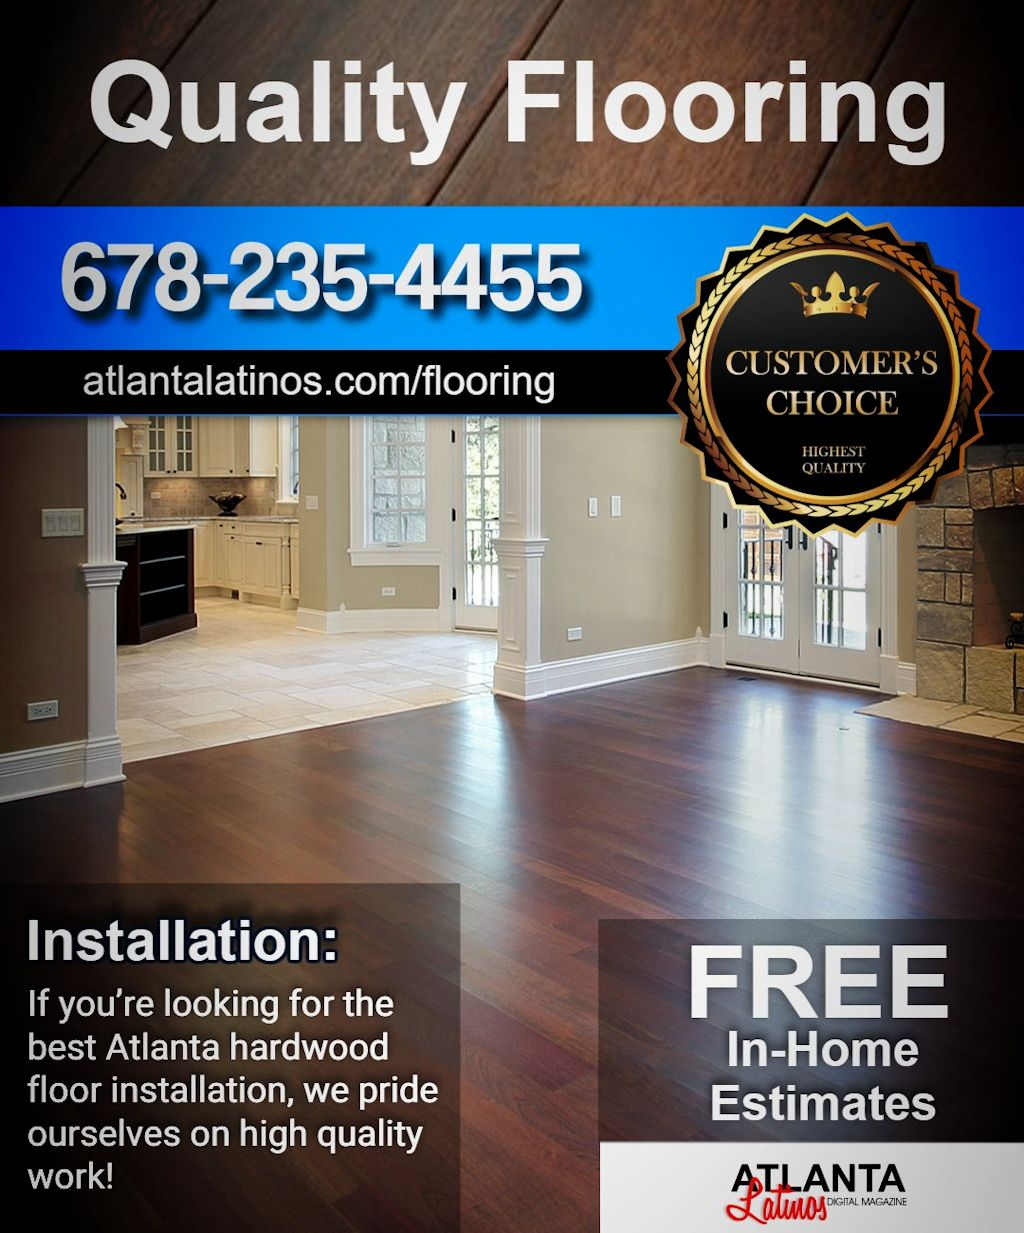 atlanta-wood-flooring-installation-free-estimate